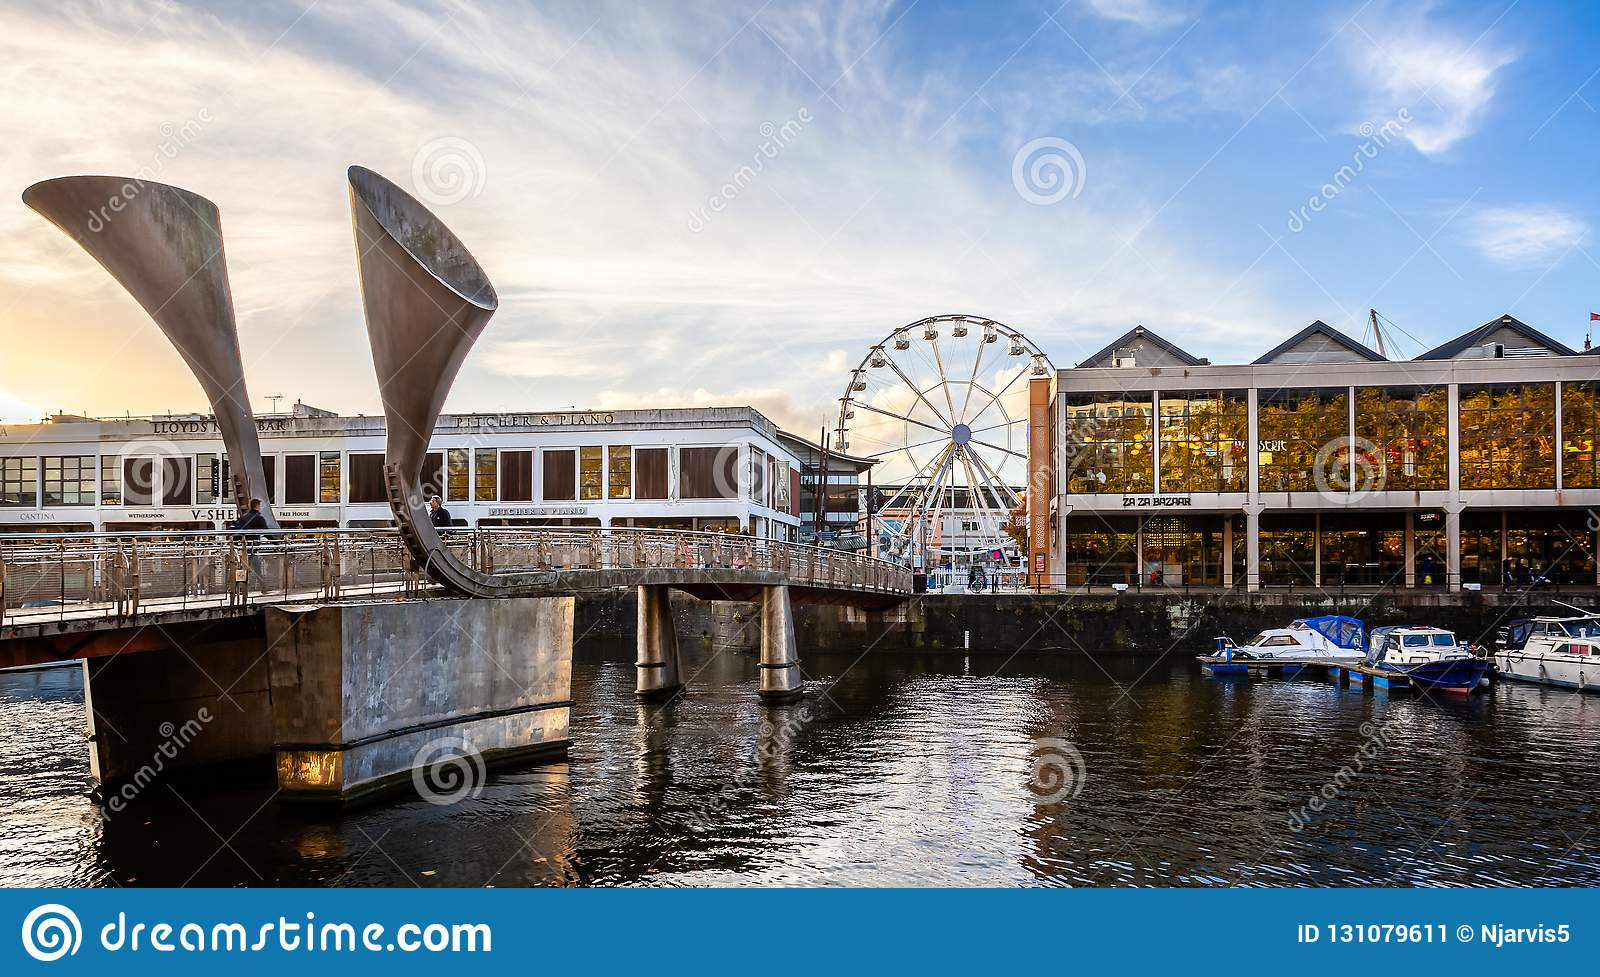 https://thumbs.dreamstime.com/z/pero-s-pedestrian-bridge-watershed-bristol-viewing-wheel-bristol-avon-uk-pero-s-pedestrian-bridge-131079611.jpg